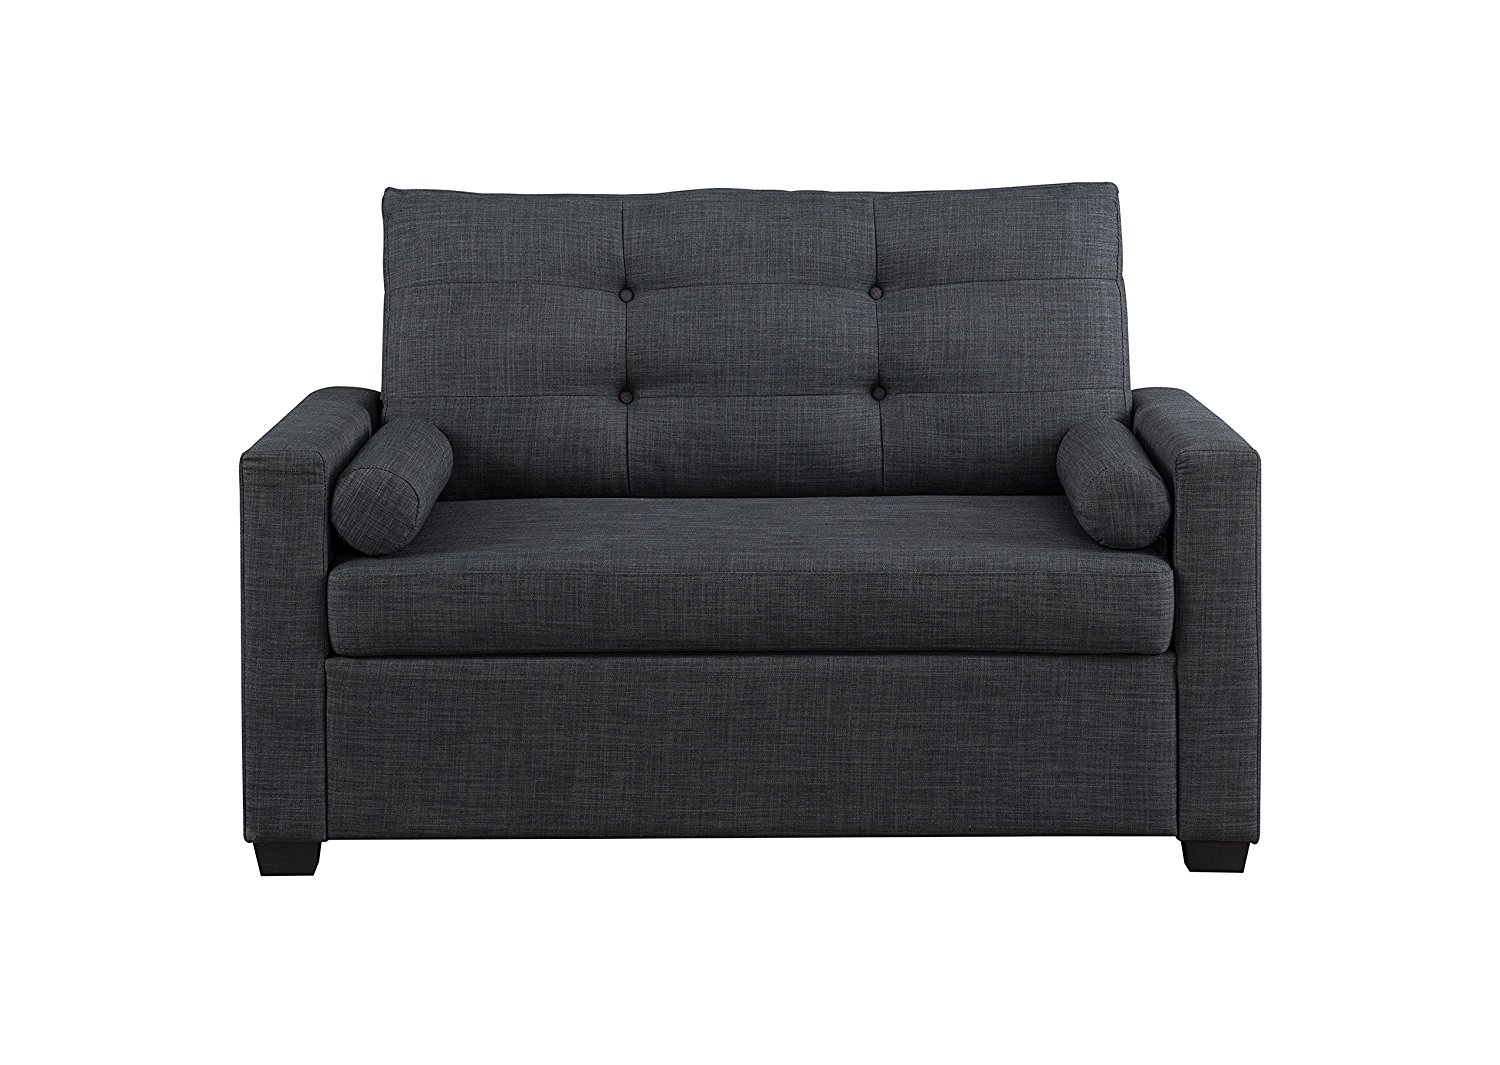 fufsack sofa sleeper lounge chair european sectional cheap black find deals on line at get quotations westwood boden navy blue twin size convertible